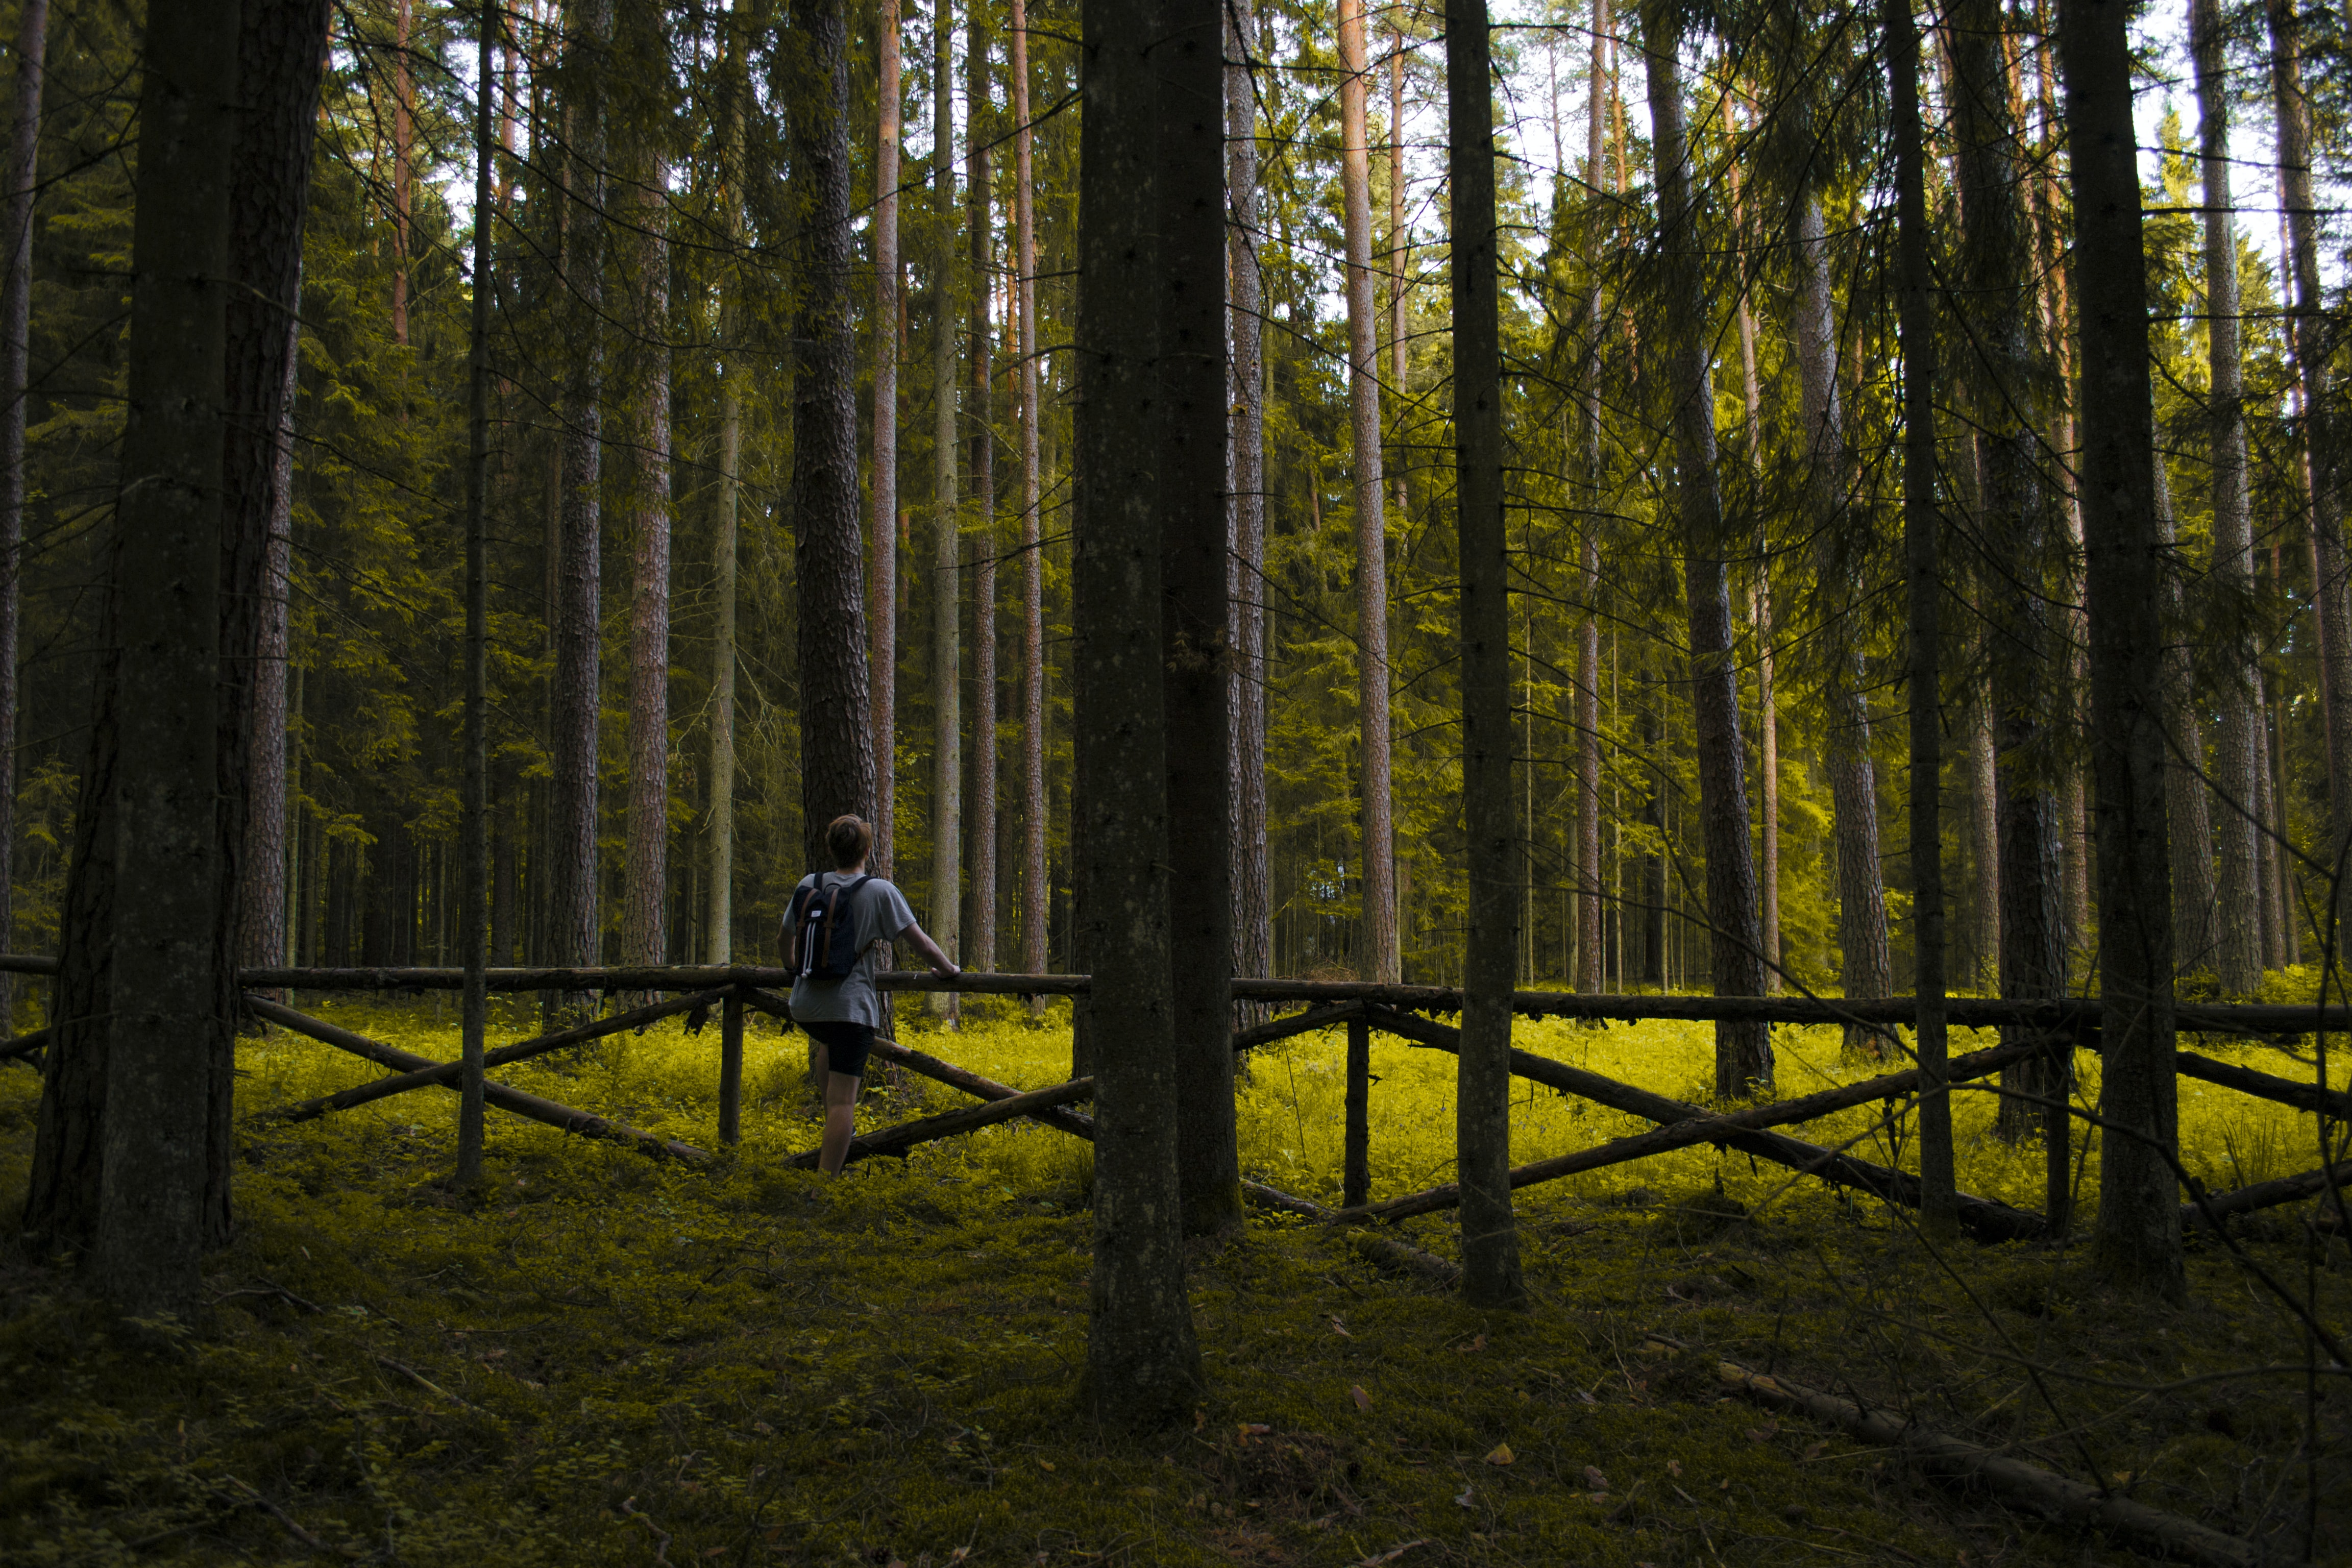 A person leaning forward against a small wooden fence in a forest